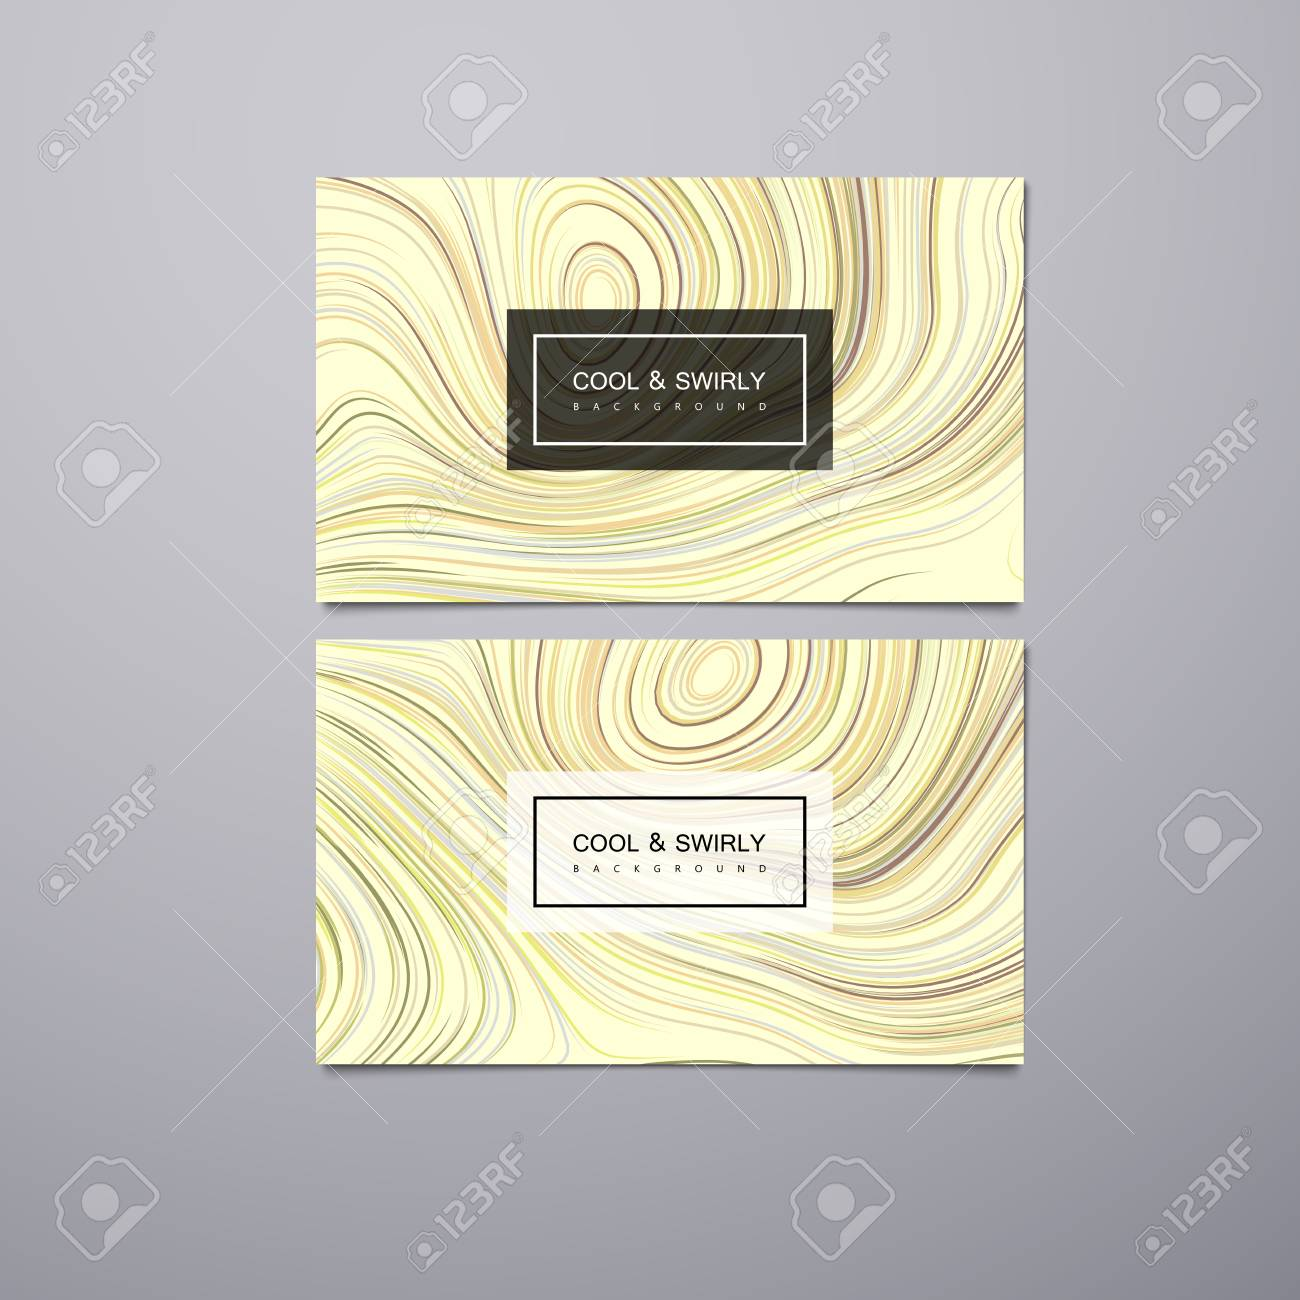 Greeting invitation business gift cards design template with greeting invitation business gift cards design template with swirled iridescent lines vector colourmoves